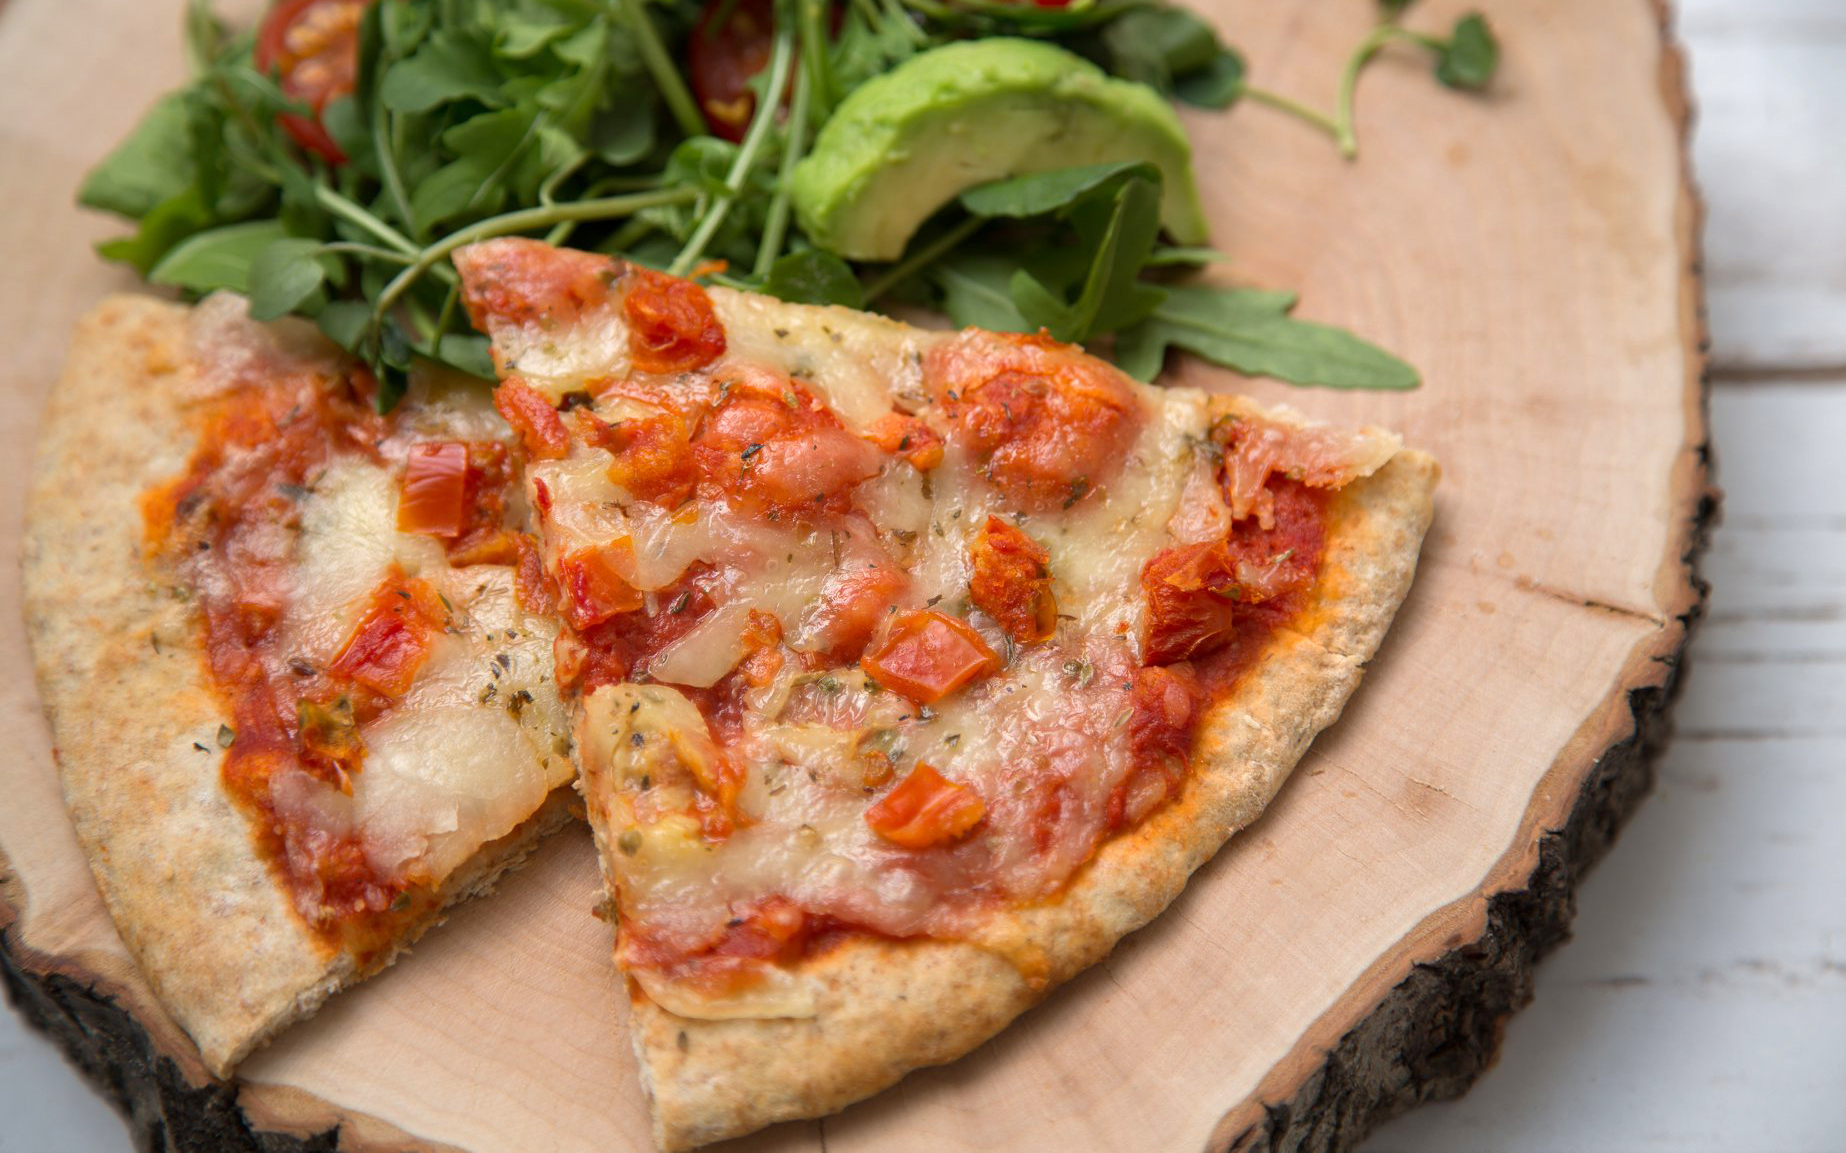 whole creations gluten-free pizza sainsbury's